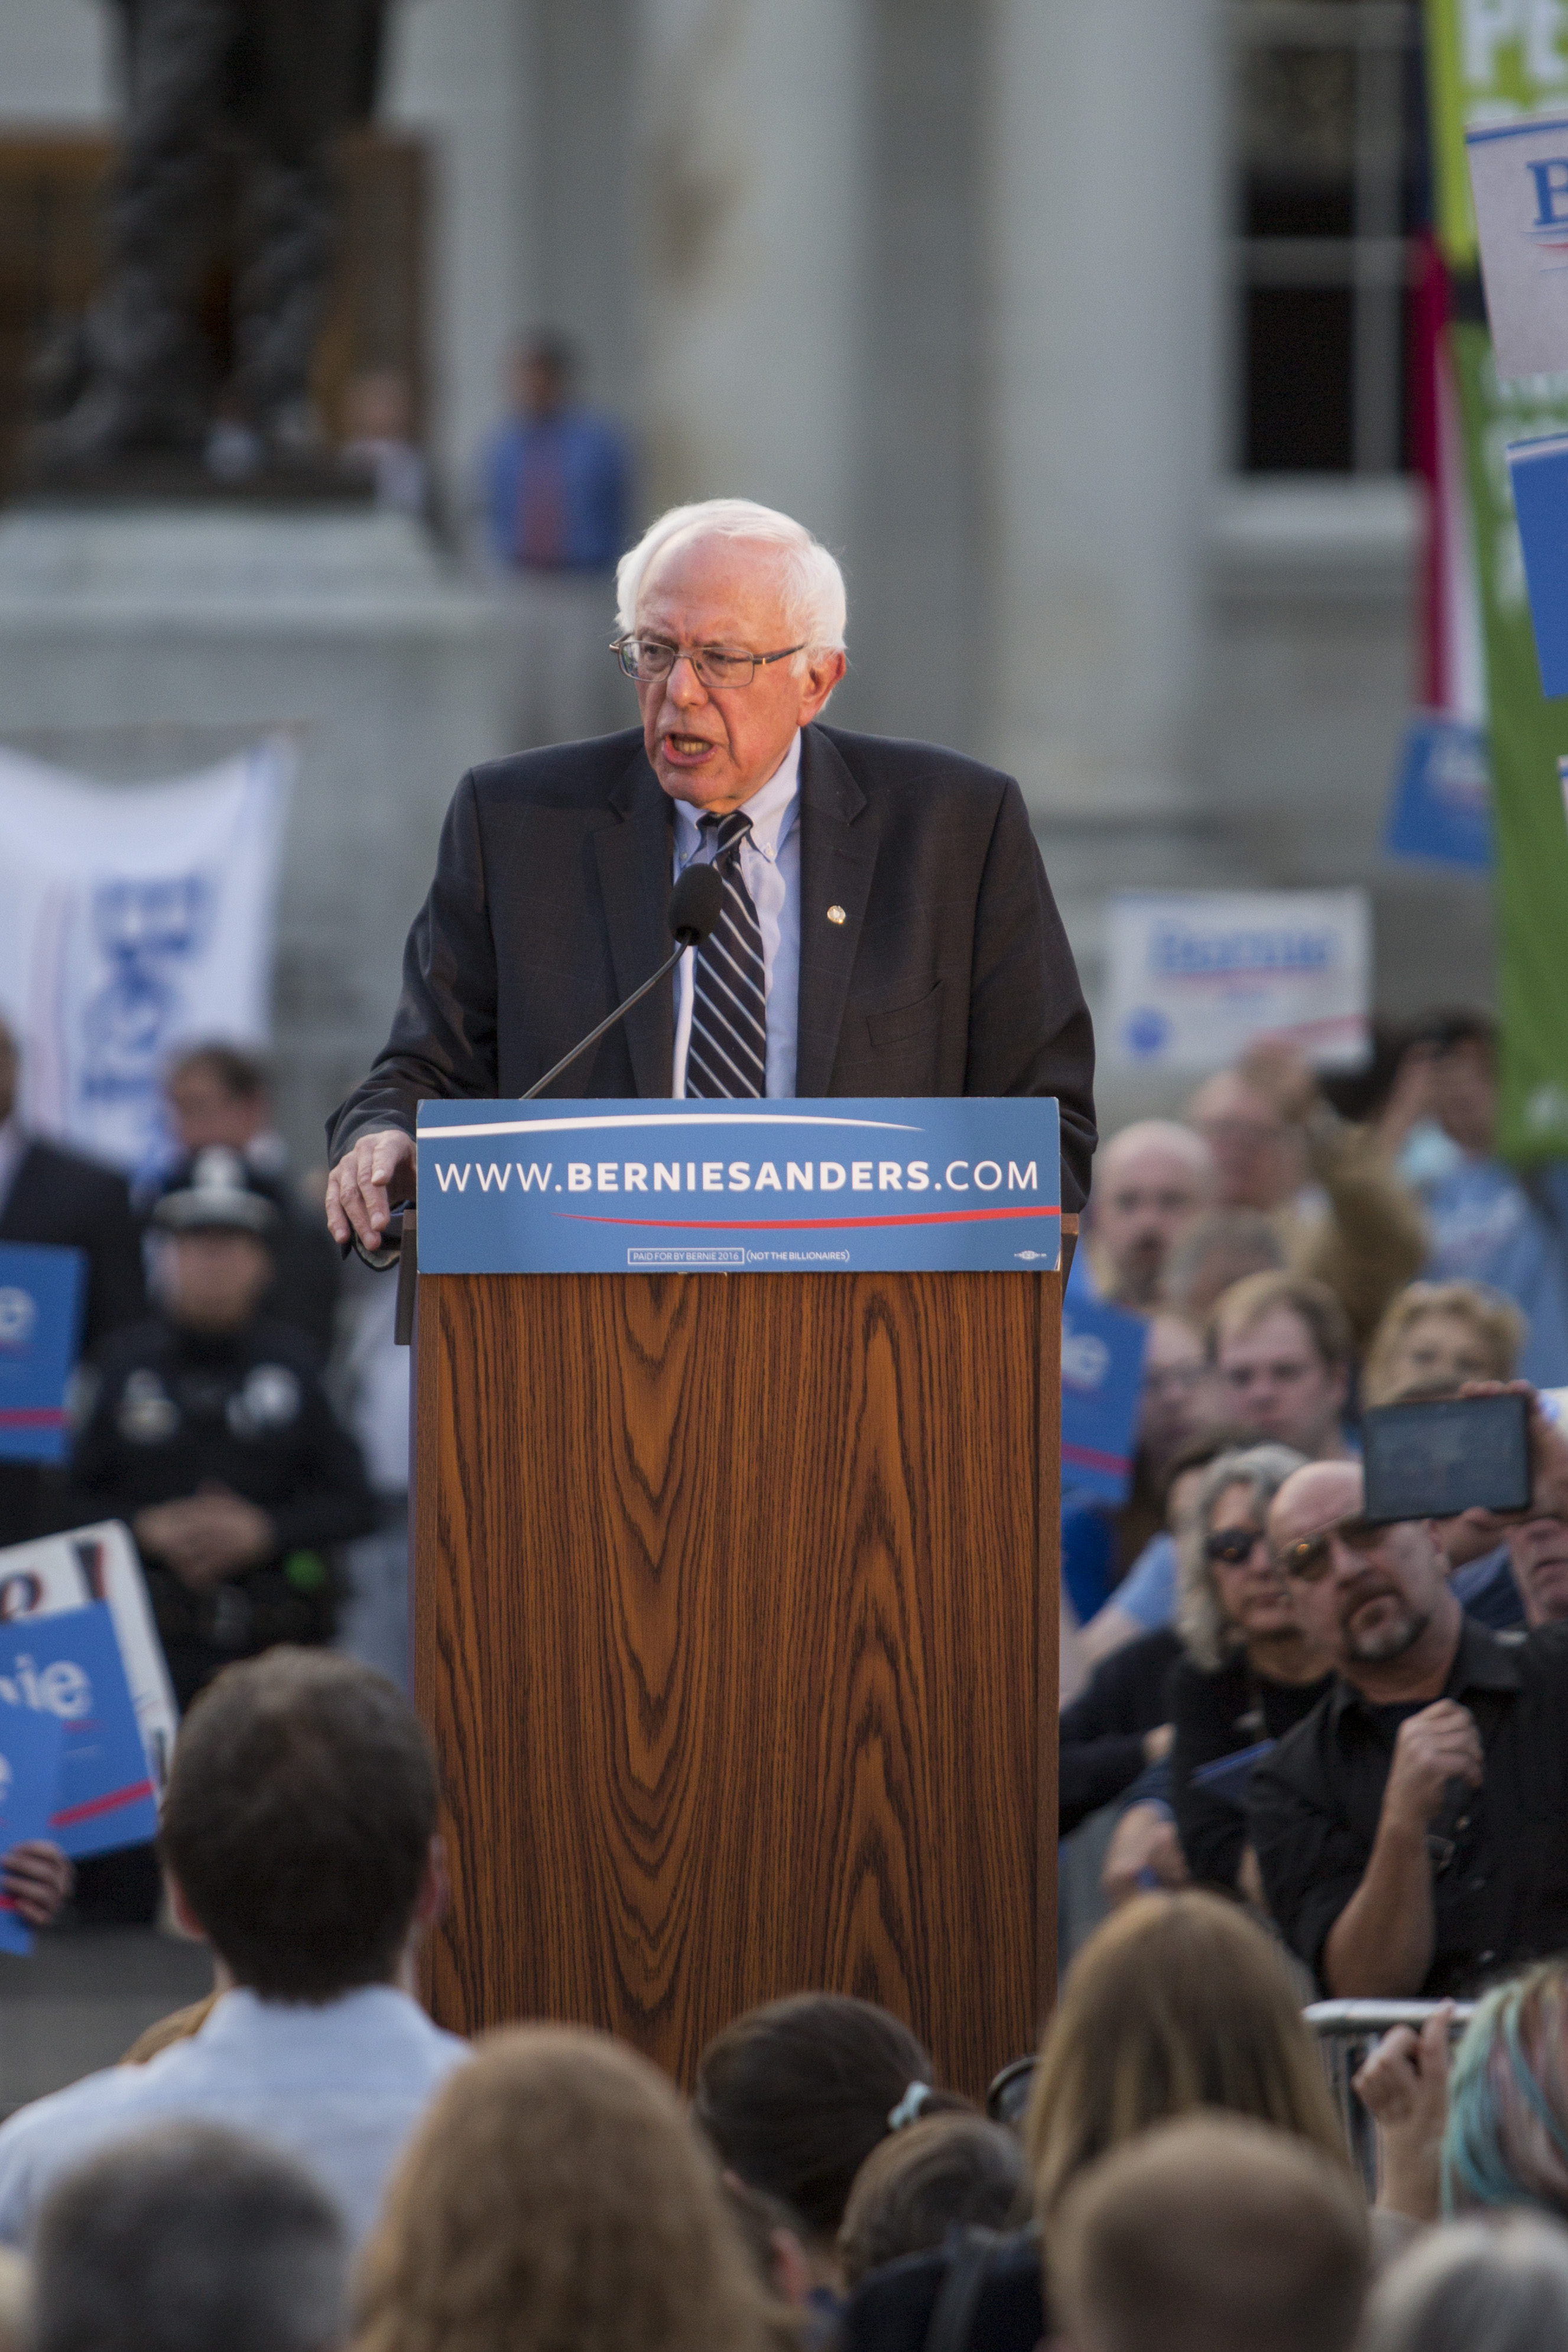 Democratic presidential candidate Sen. Bernie Sanders (I-VT) speaks at a rally after filing paperwork for the New Hampshire primary at the State House on November 5, 2015 in Concord, New Hampshire.